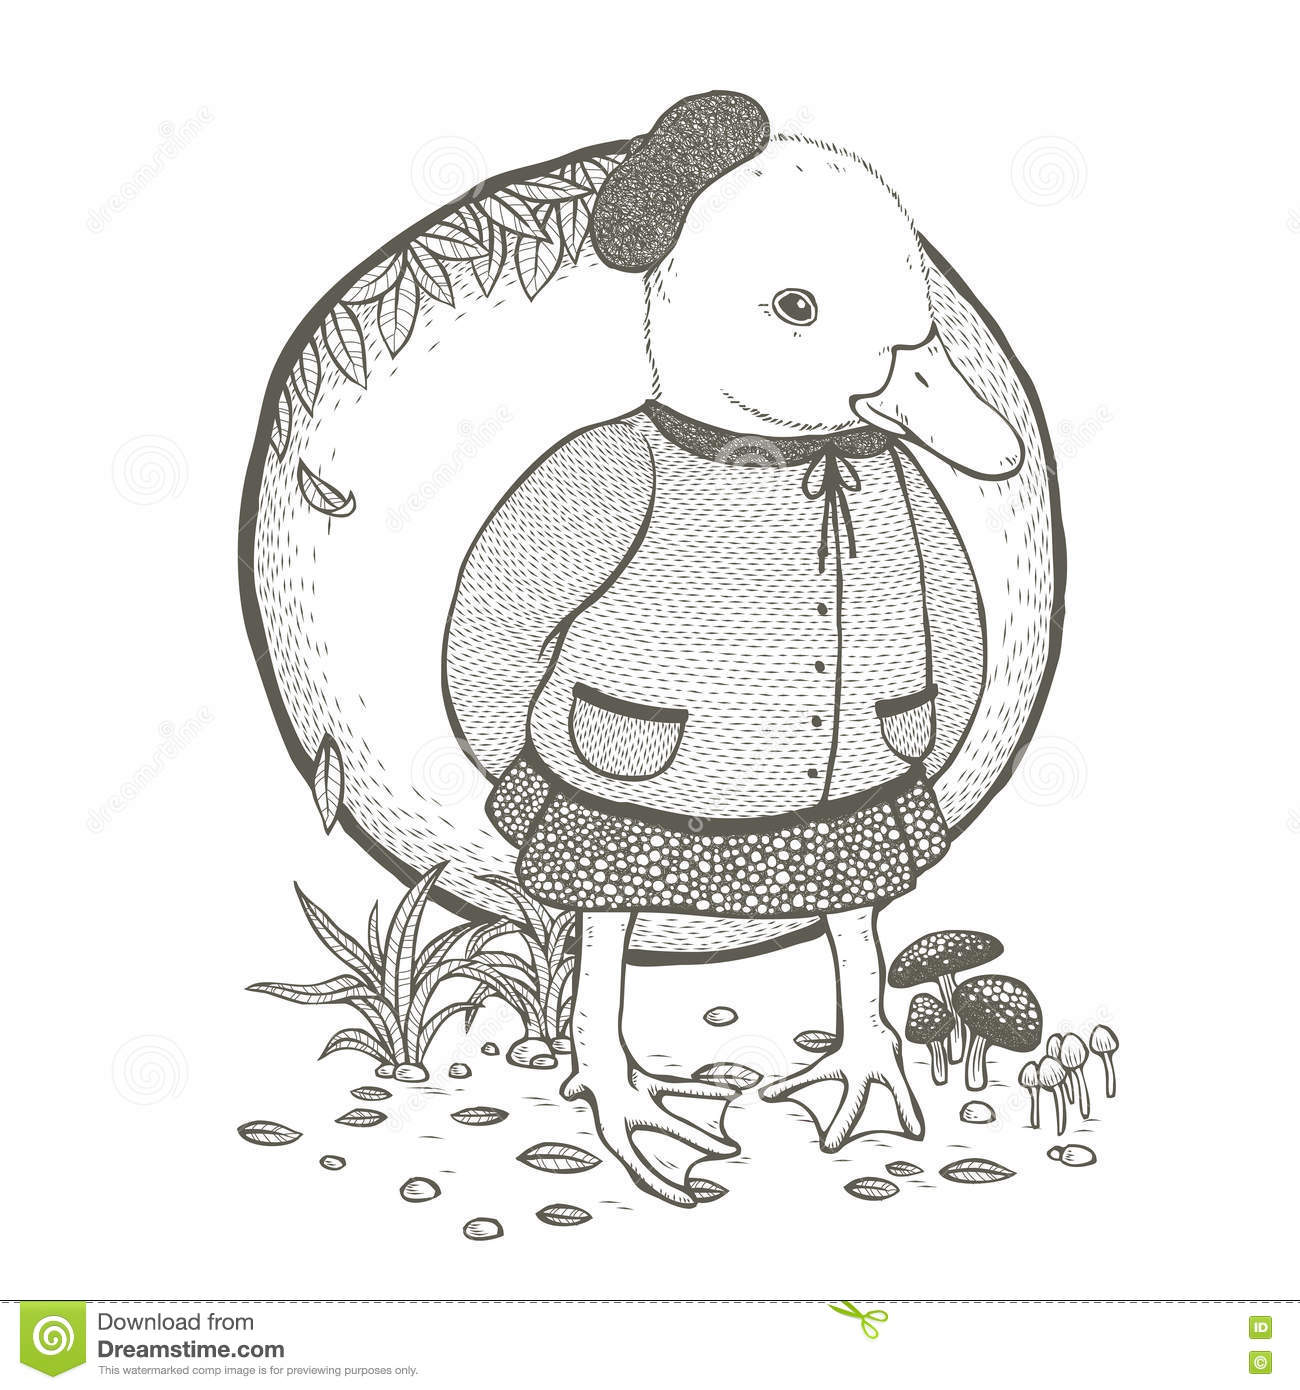 Cute duck coloring page stock vector. Illustration of exquisite ...